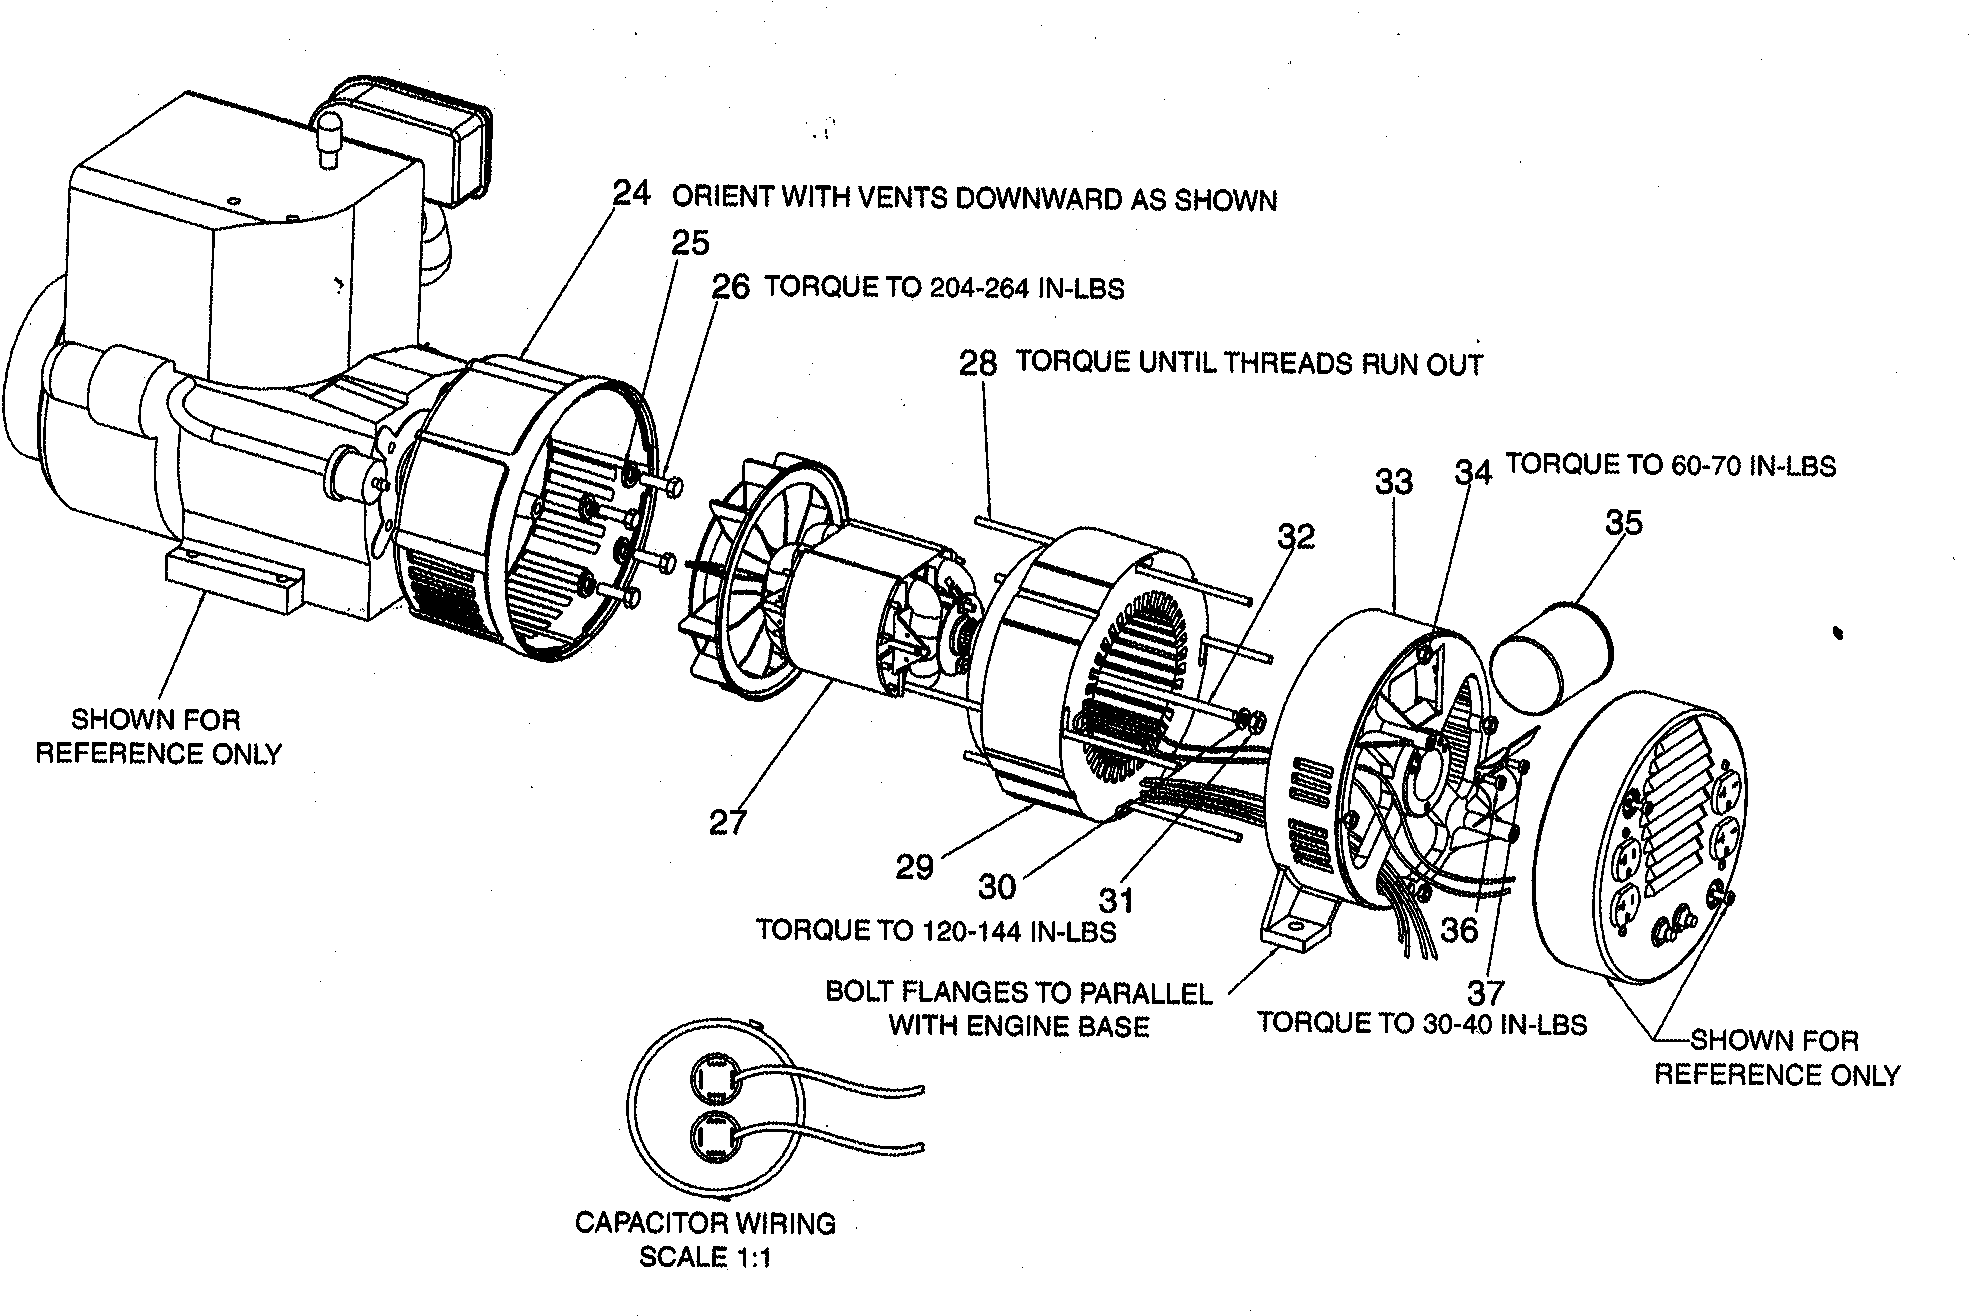 Suspension Disaster Again Need Advise Parts 141938 further Kenmore Elite Refrigerator Parts Diagram together with Craftsman 358791170 Gas Trimmer Parts C 158286 187878 205369 moreover For A 5 Blade Relay Wiring To Starter also Specs. on starter motor parts diagram